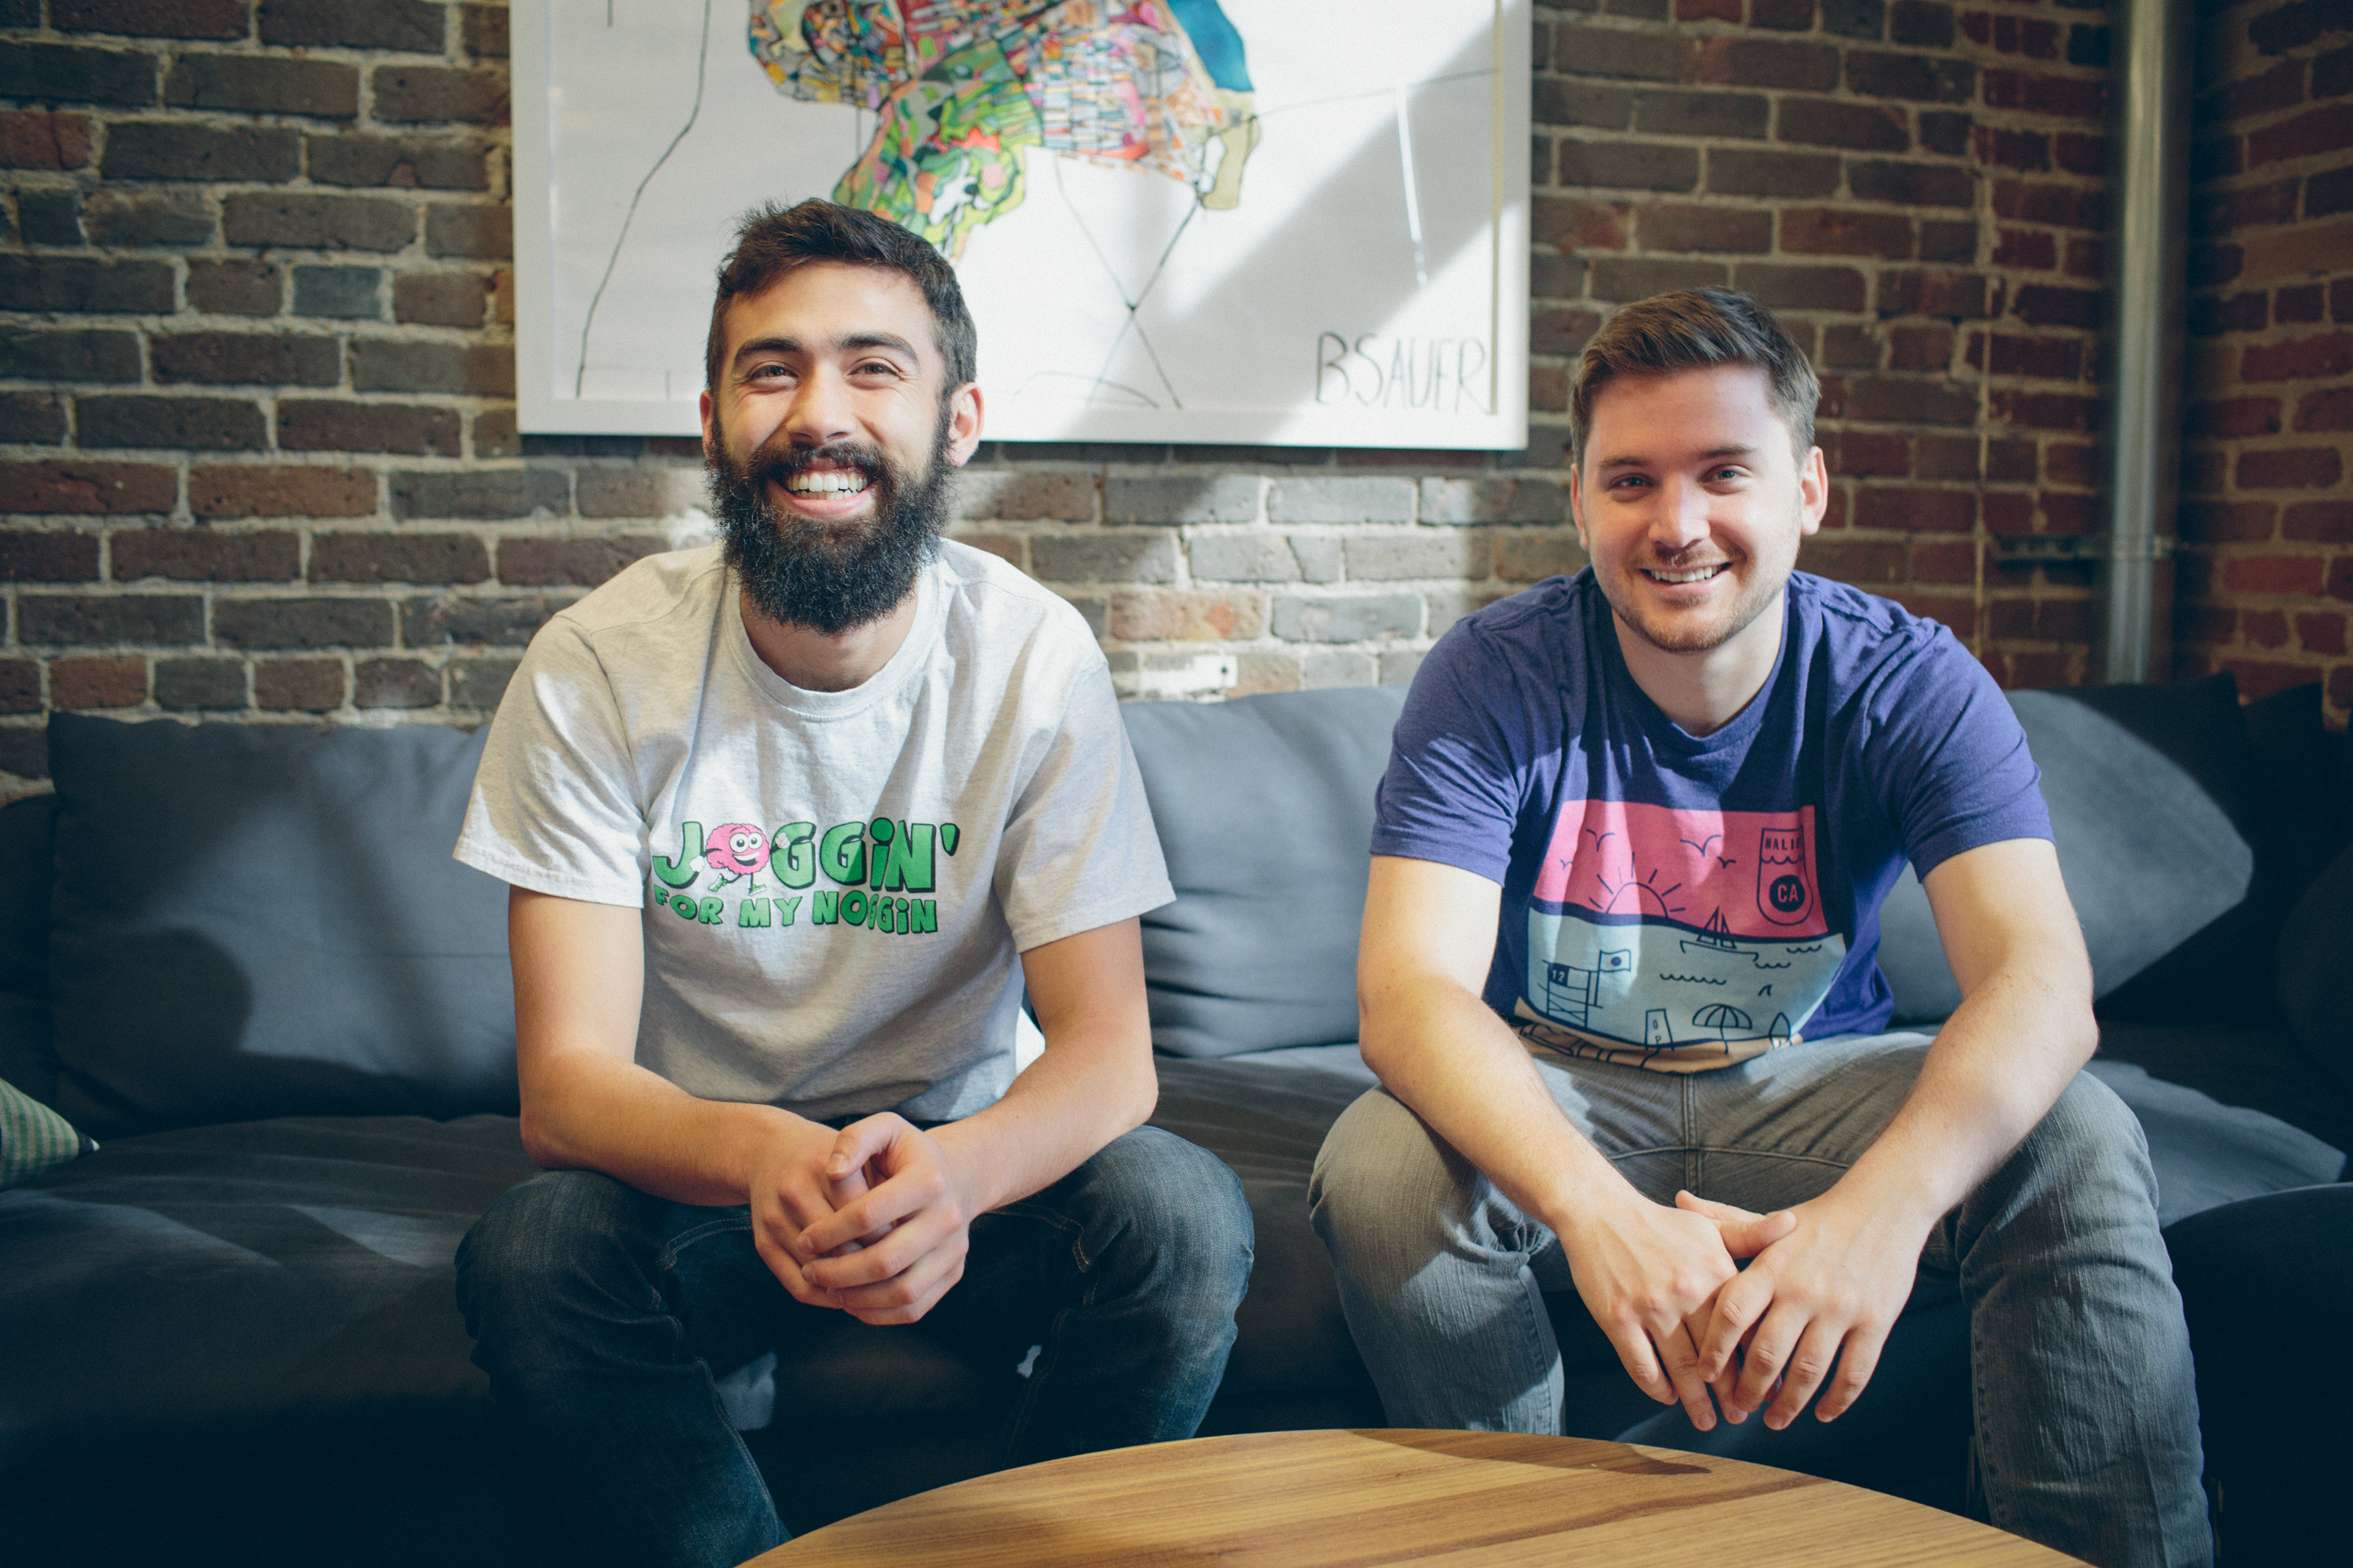 Teespring co-founders Evan Stites-Clayton (left) and Walker Williams (right)